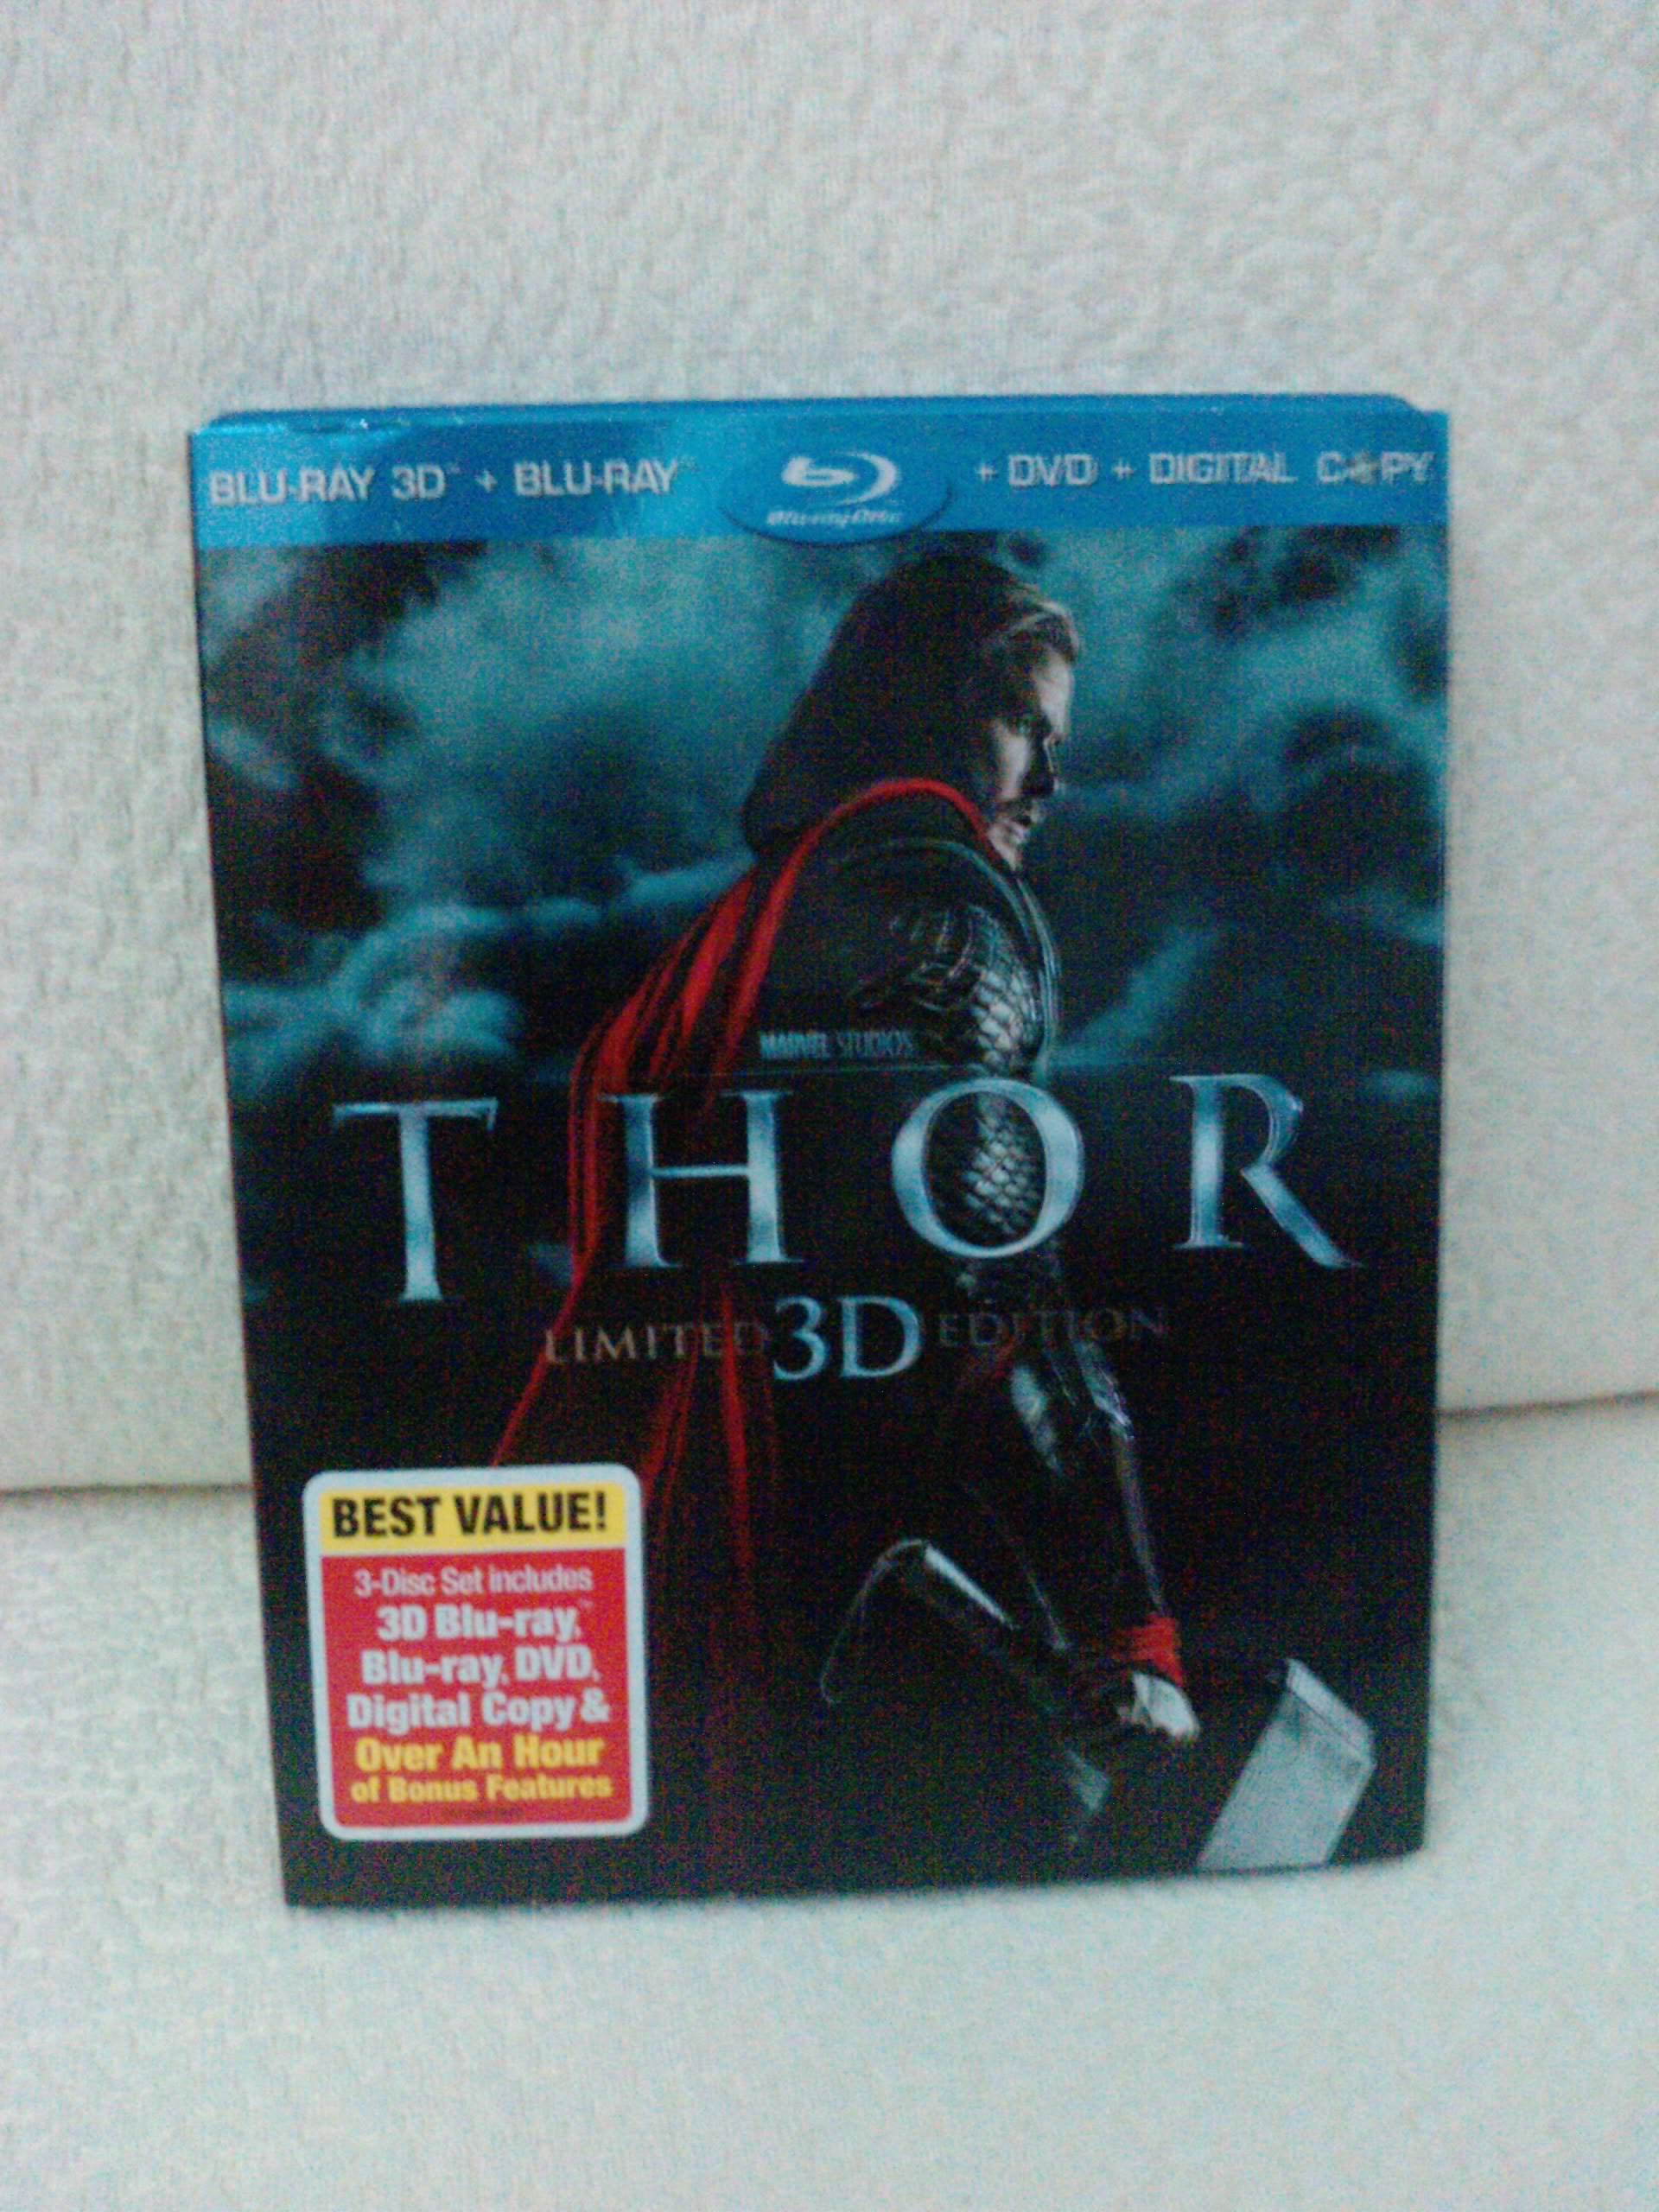 Thor blu ray 3d download